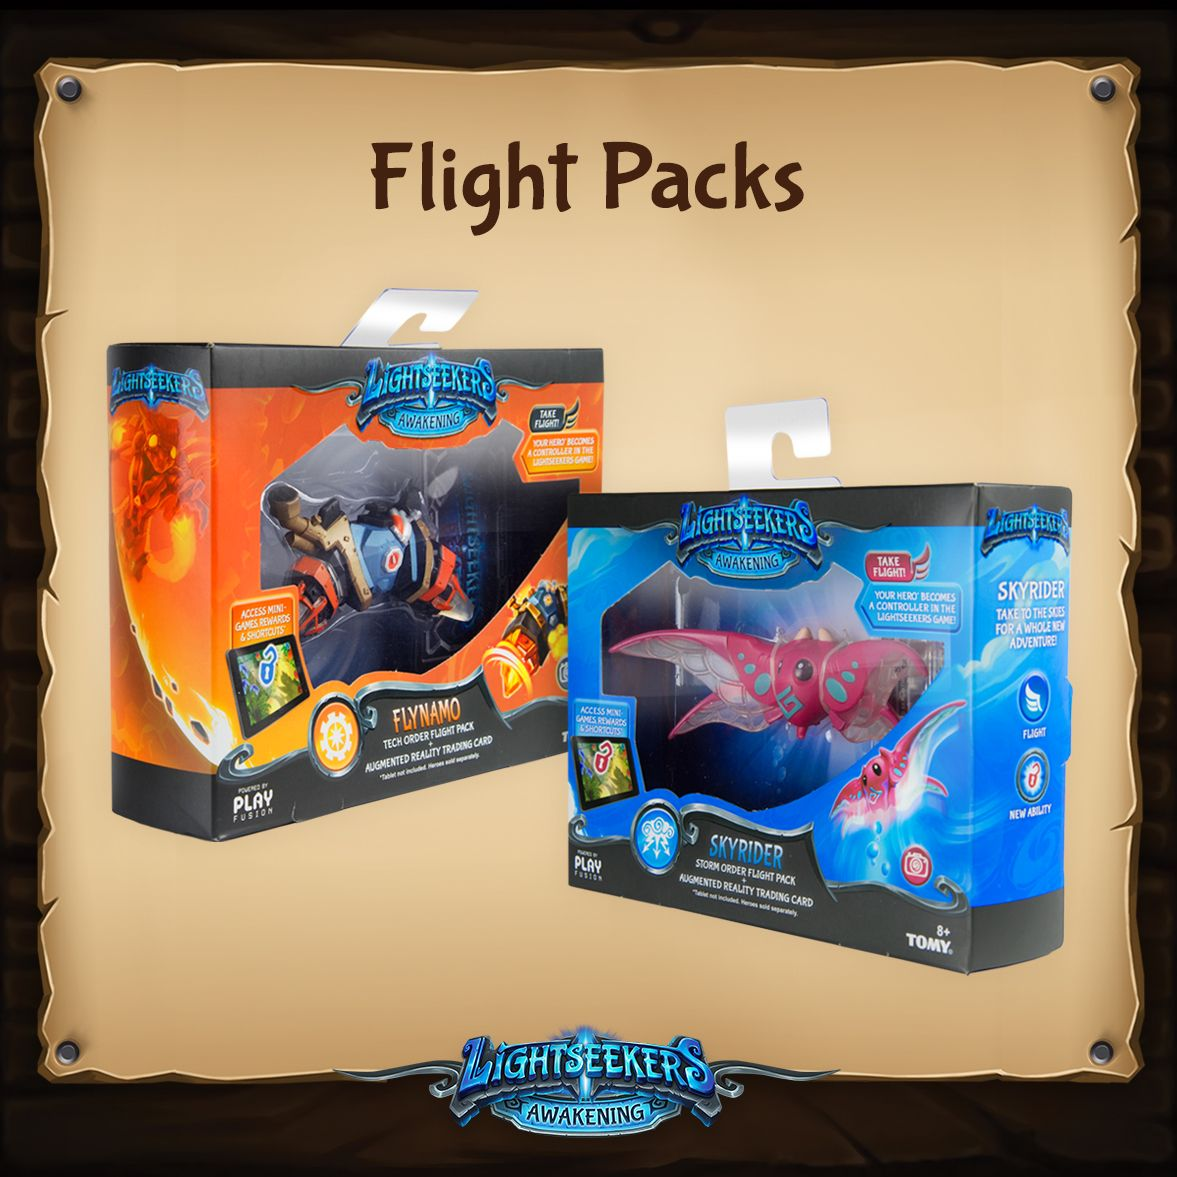 Lightseekers - Flight Pack packaging